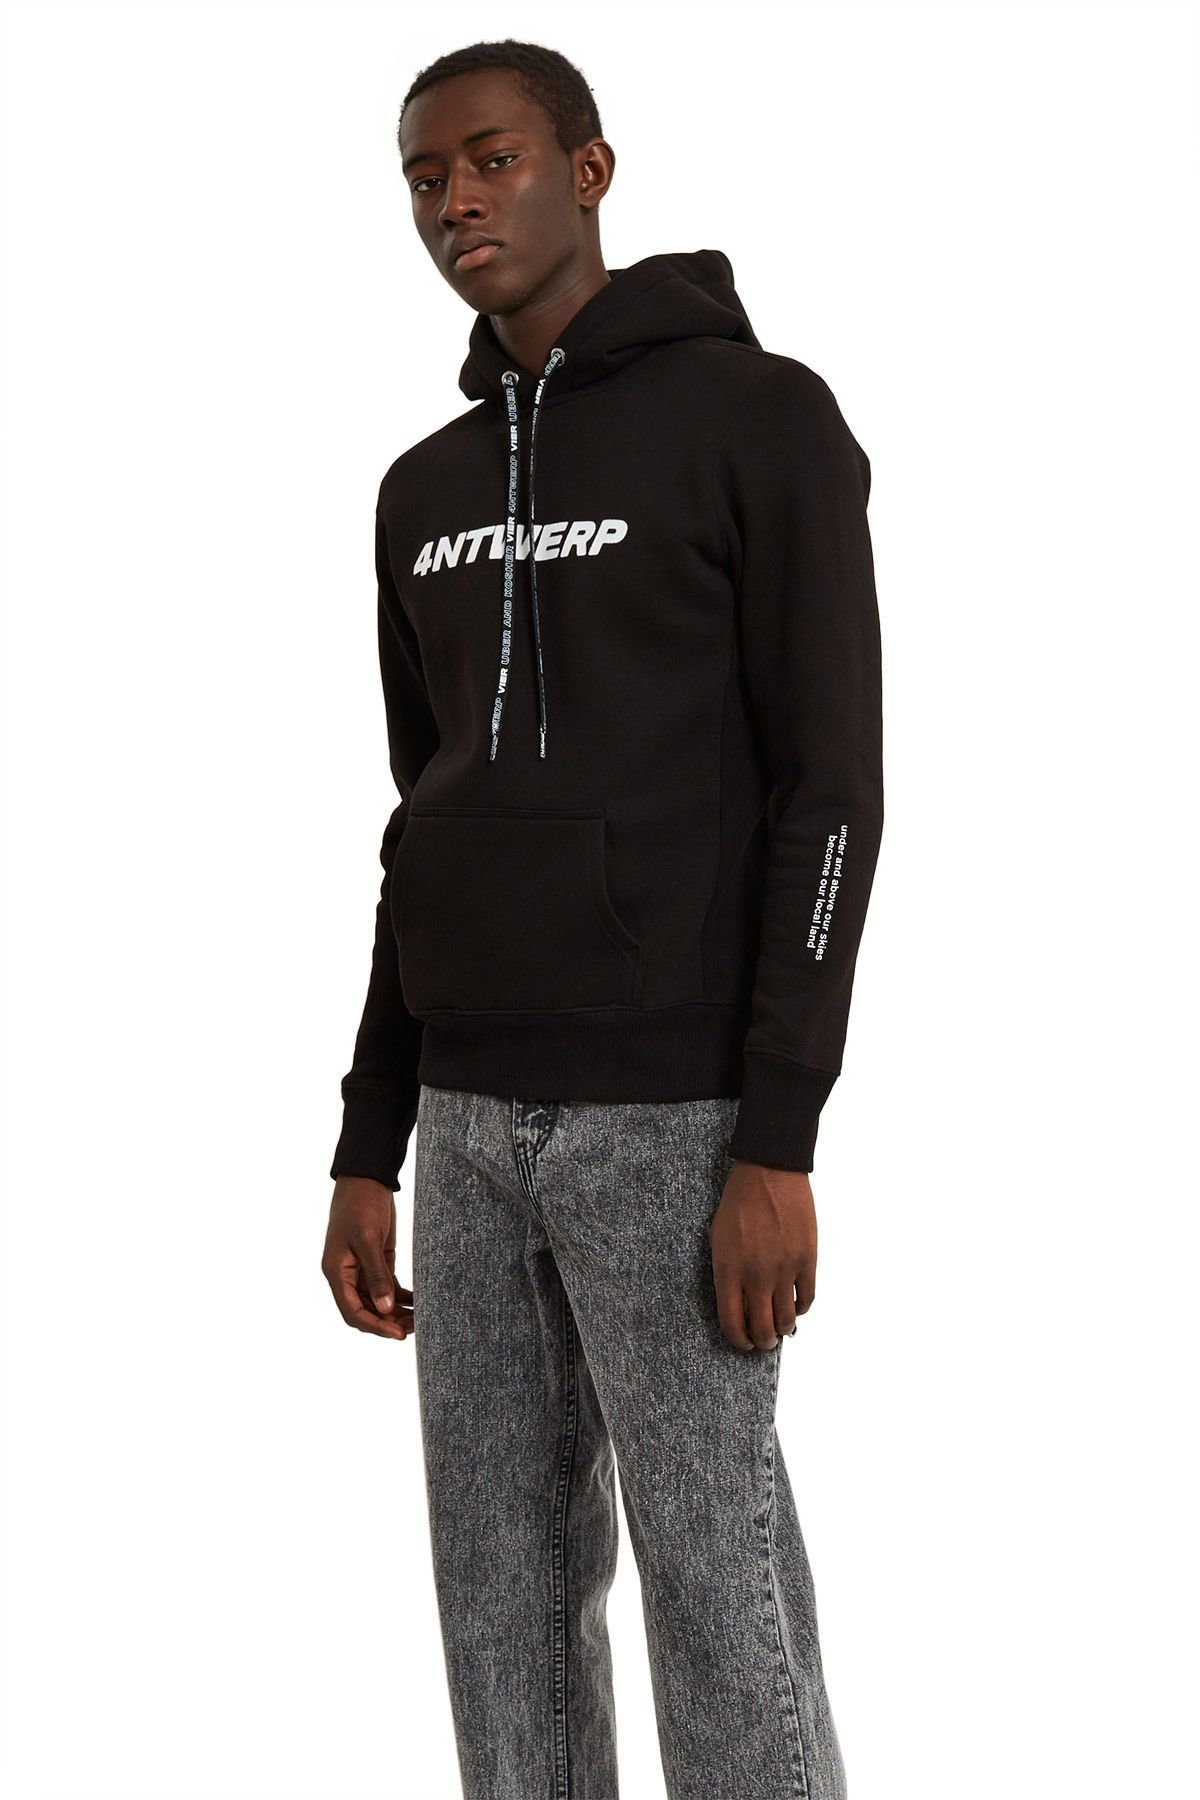 Vier Antwerp, Antwerp Hoodie Part of the Vier Antwerp and Uber and Kosher  collaboration, this hoodie features custom logo graphics along the front  and back ...